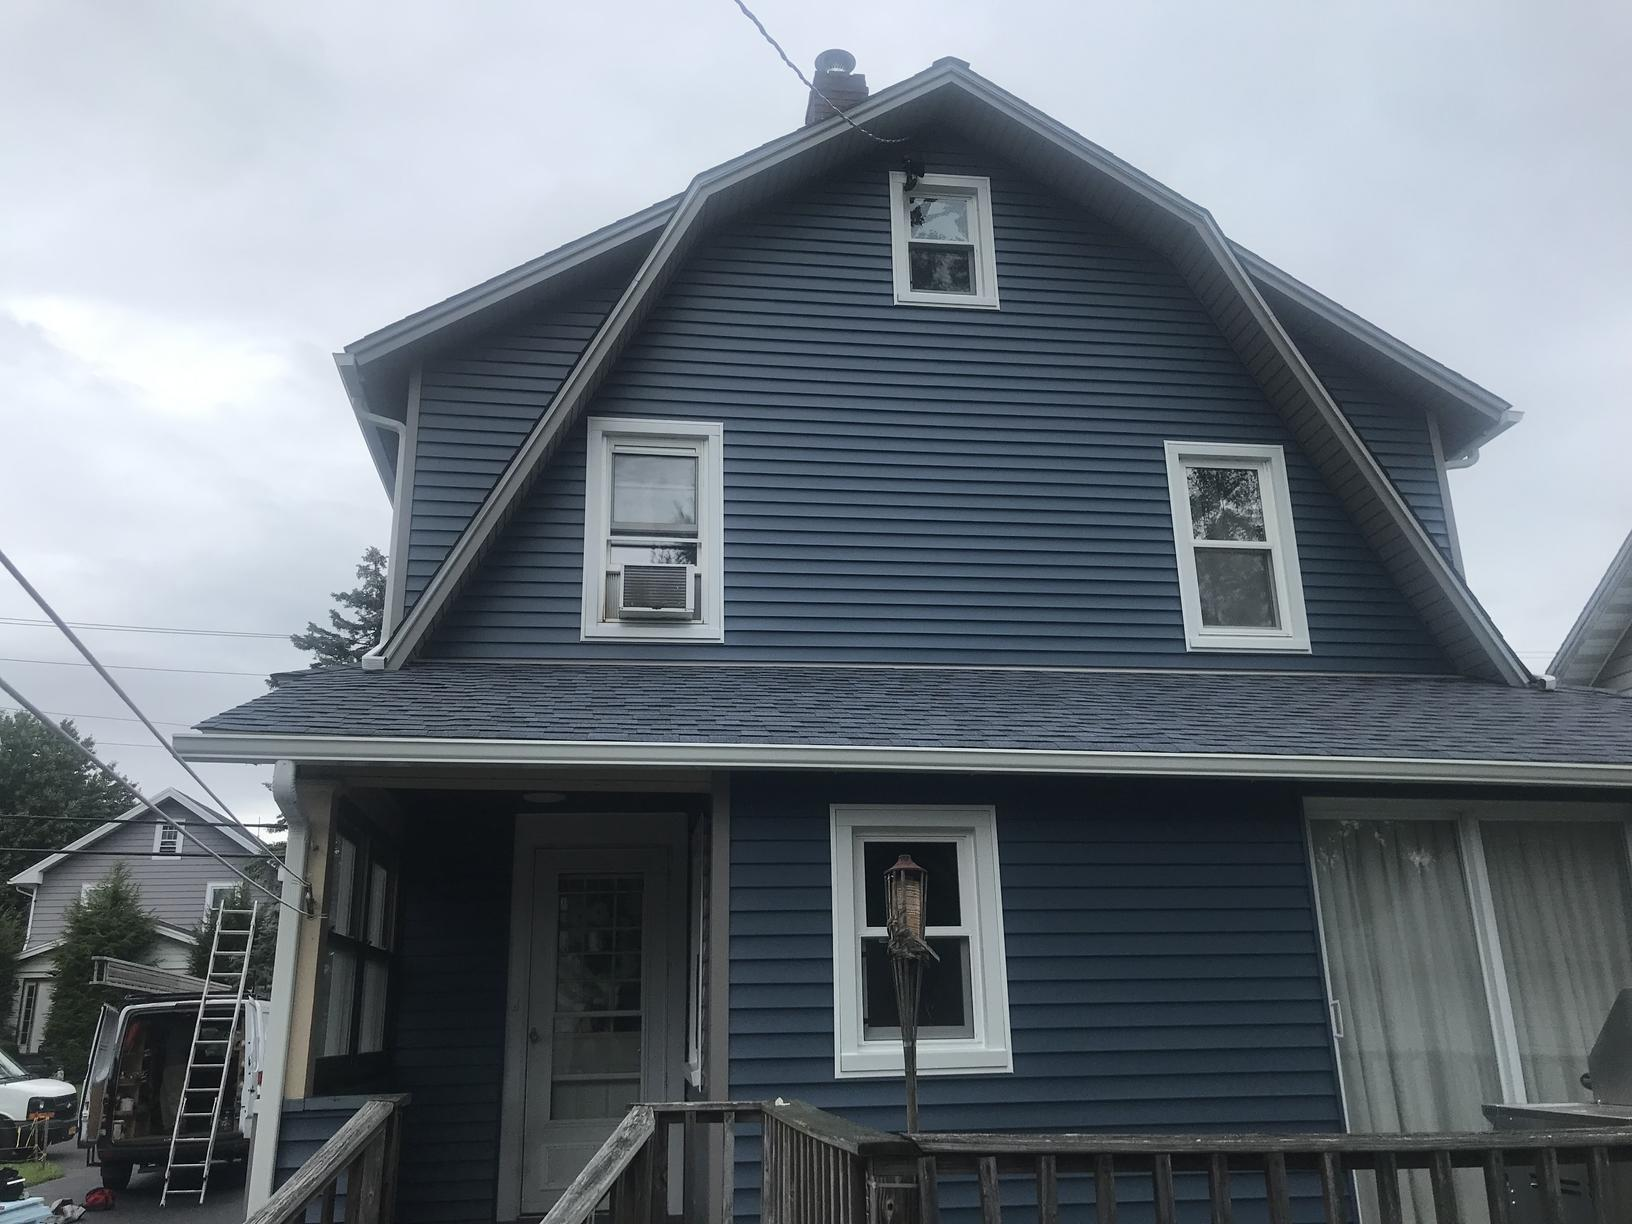 Siding and Gutter Replacement in Ulster Park, New York